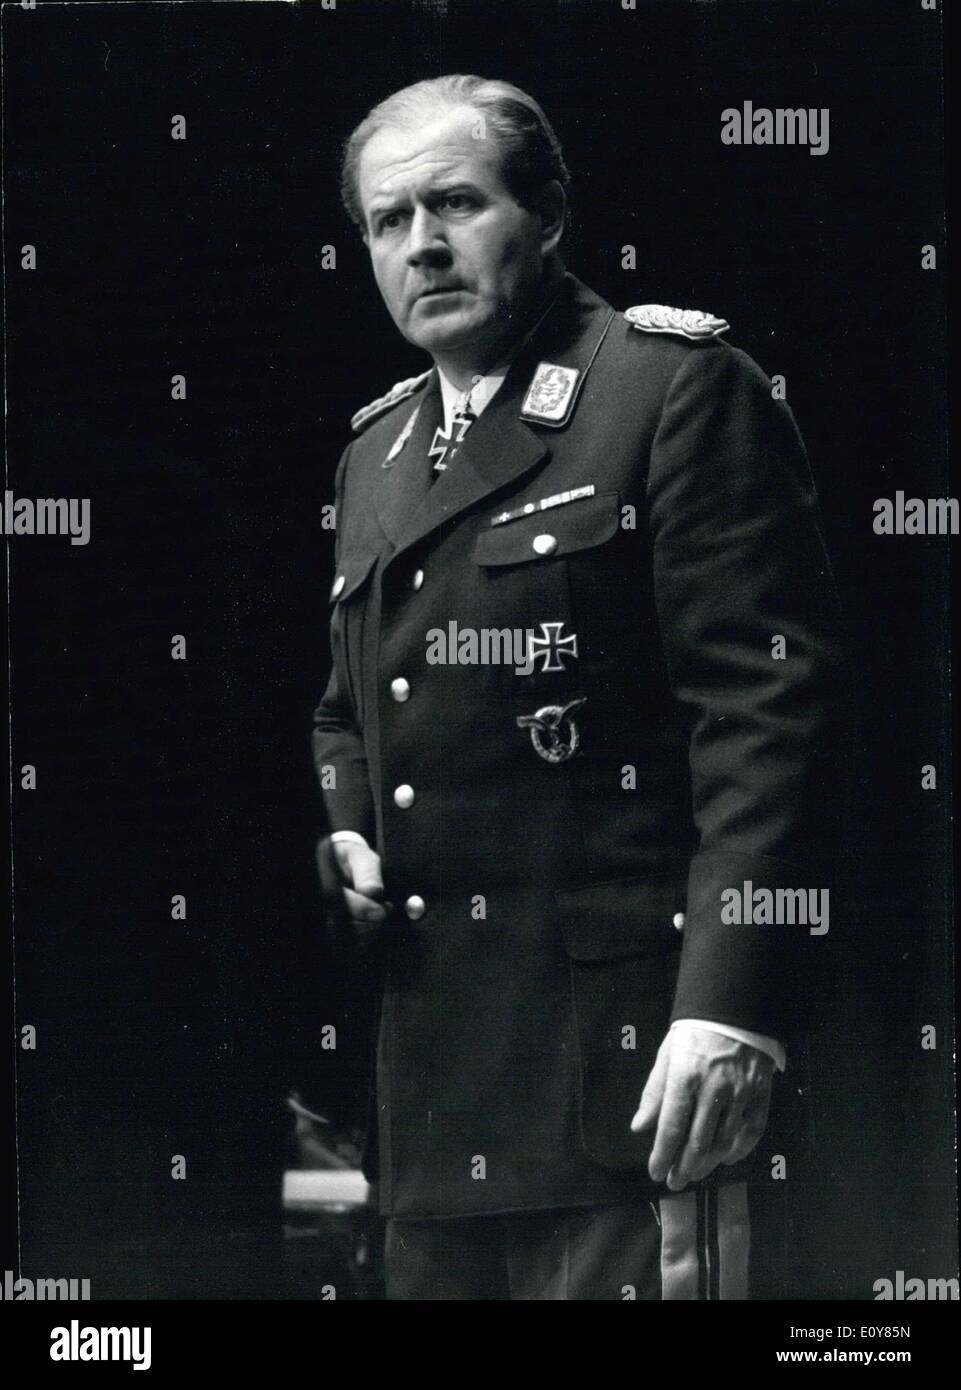 Apr. 21, 1969 - ''The Devil's General'' cam currently be found on a tour of Germany. Hans Joachim Kulenkampff, best known as quizmaster of ''Einer wird gewinnen''(One will win), plays the role of General Harras in this theater piece from Carl Zuckmayer. Directed by Elmar Schulte. Our picture was taken during his guest role in K?ln several days ago. - Stock Image